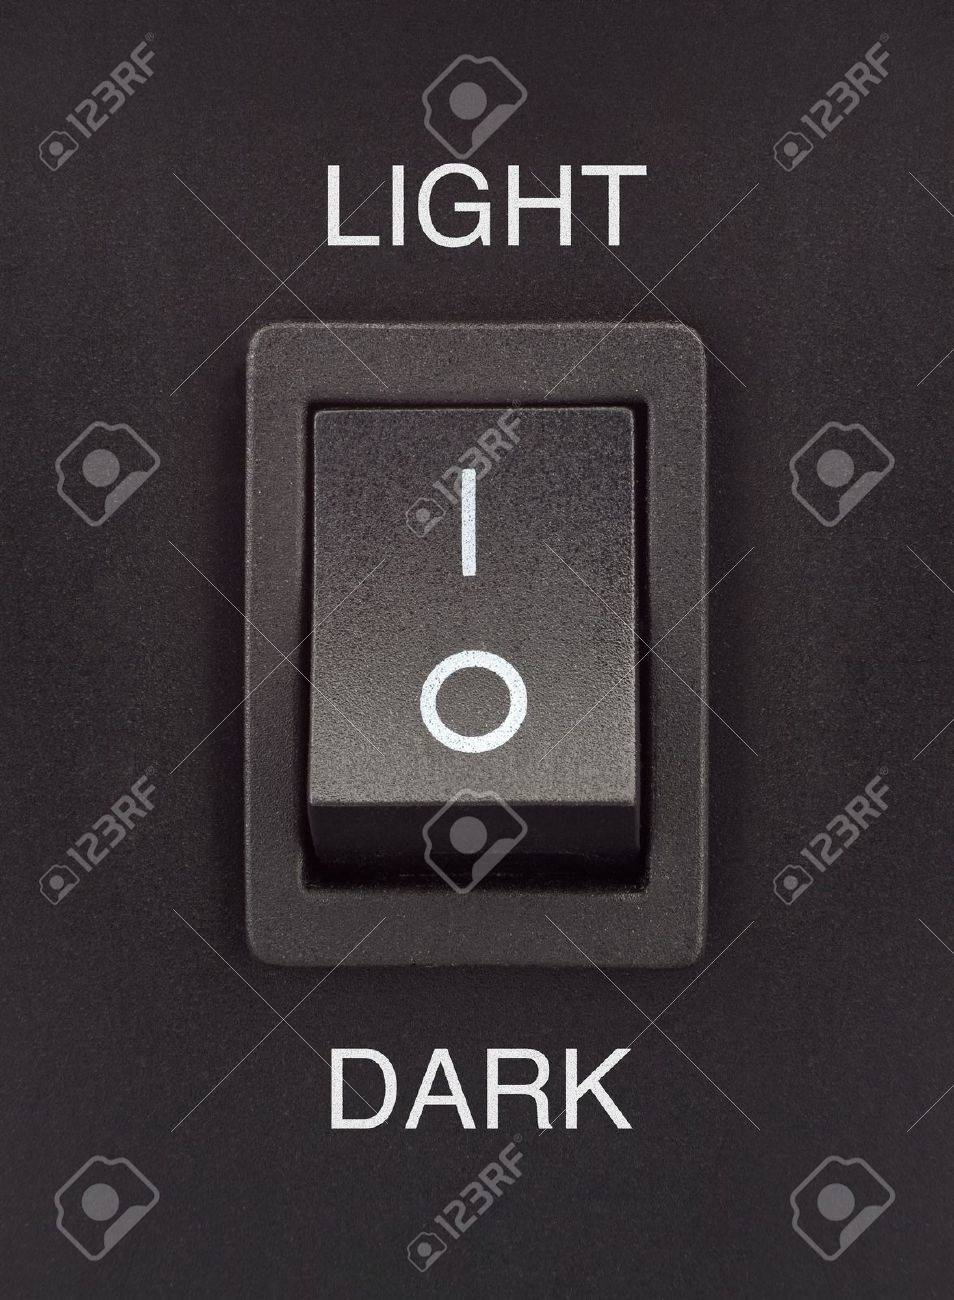 Black toggle switch on black surface - light dark Stock Photo - 14453442